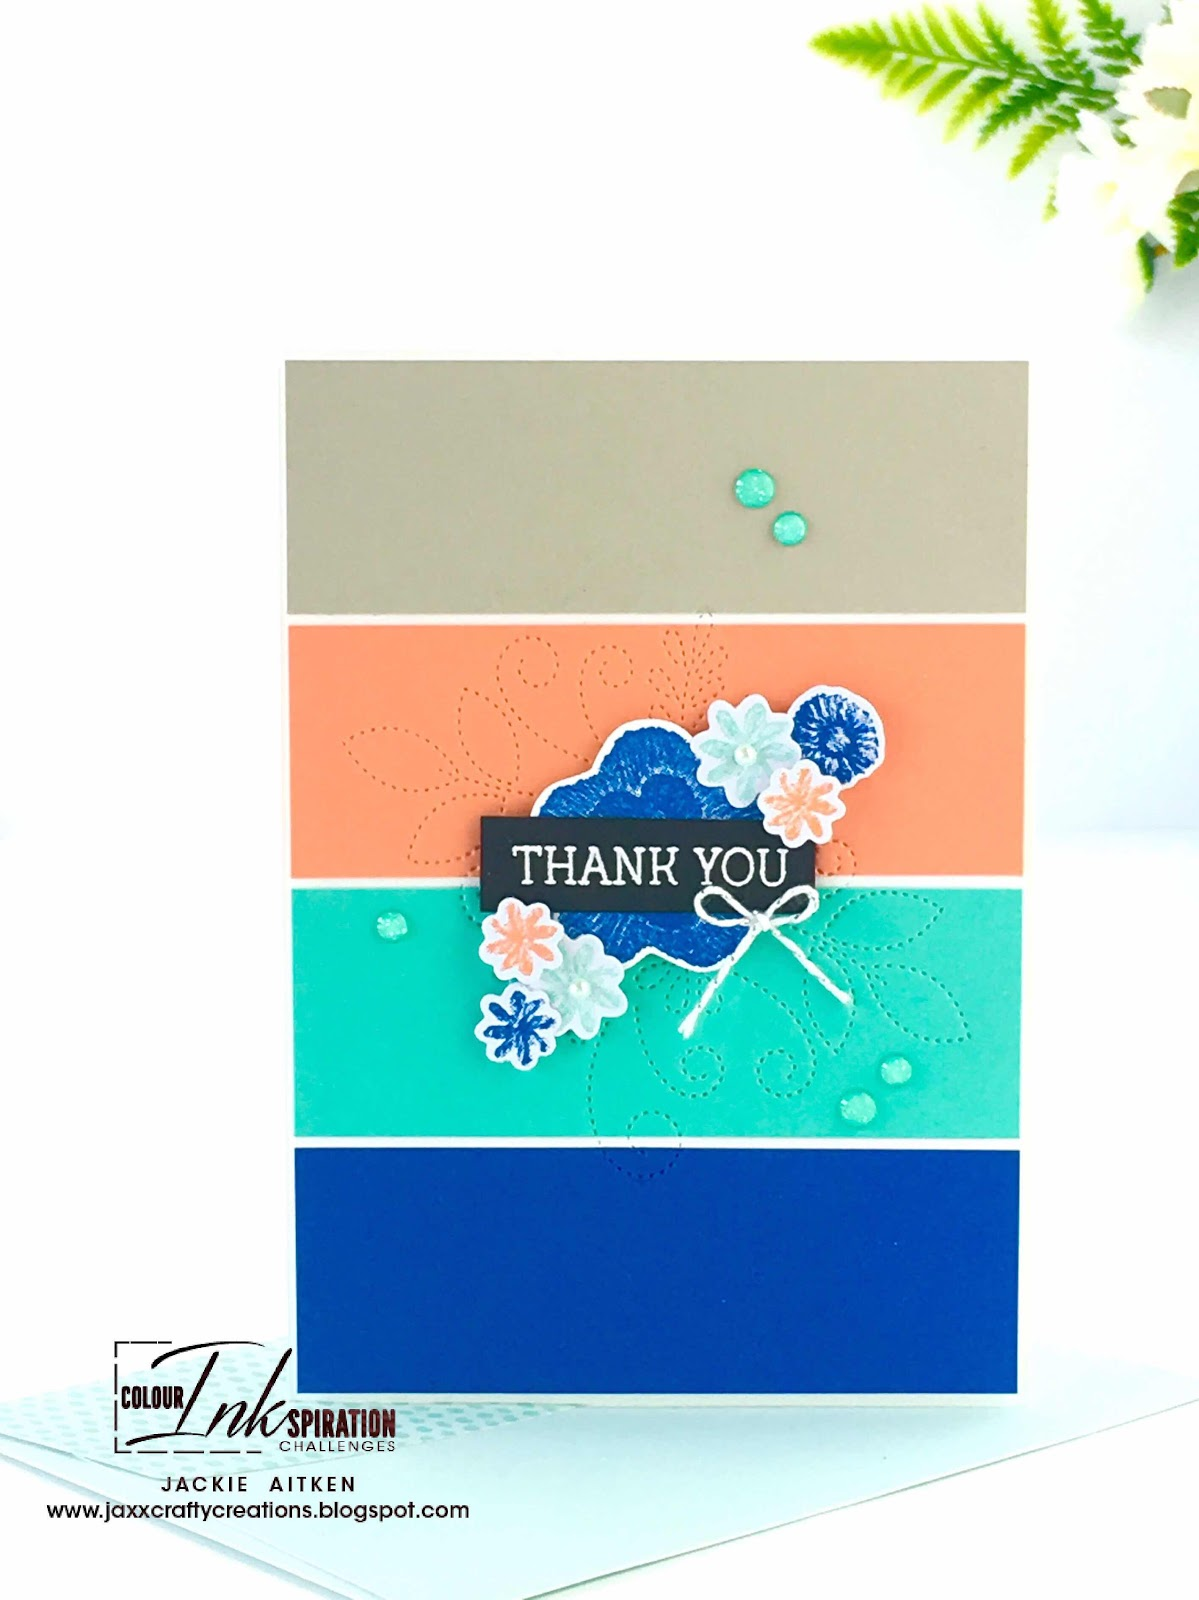 Artisan Design Team 2019, Colour INKspiration Blog Challenge, Needle & Thread Stamp Set, Stampin' Up!, Jaxx Crafty Creations, Colour Challenge, CAS cards, Thank You Card,